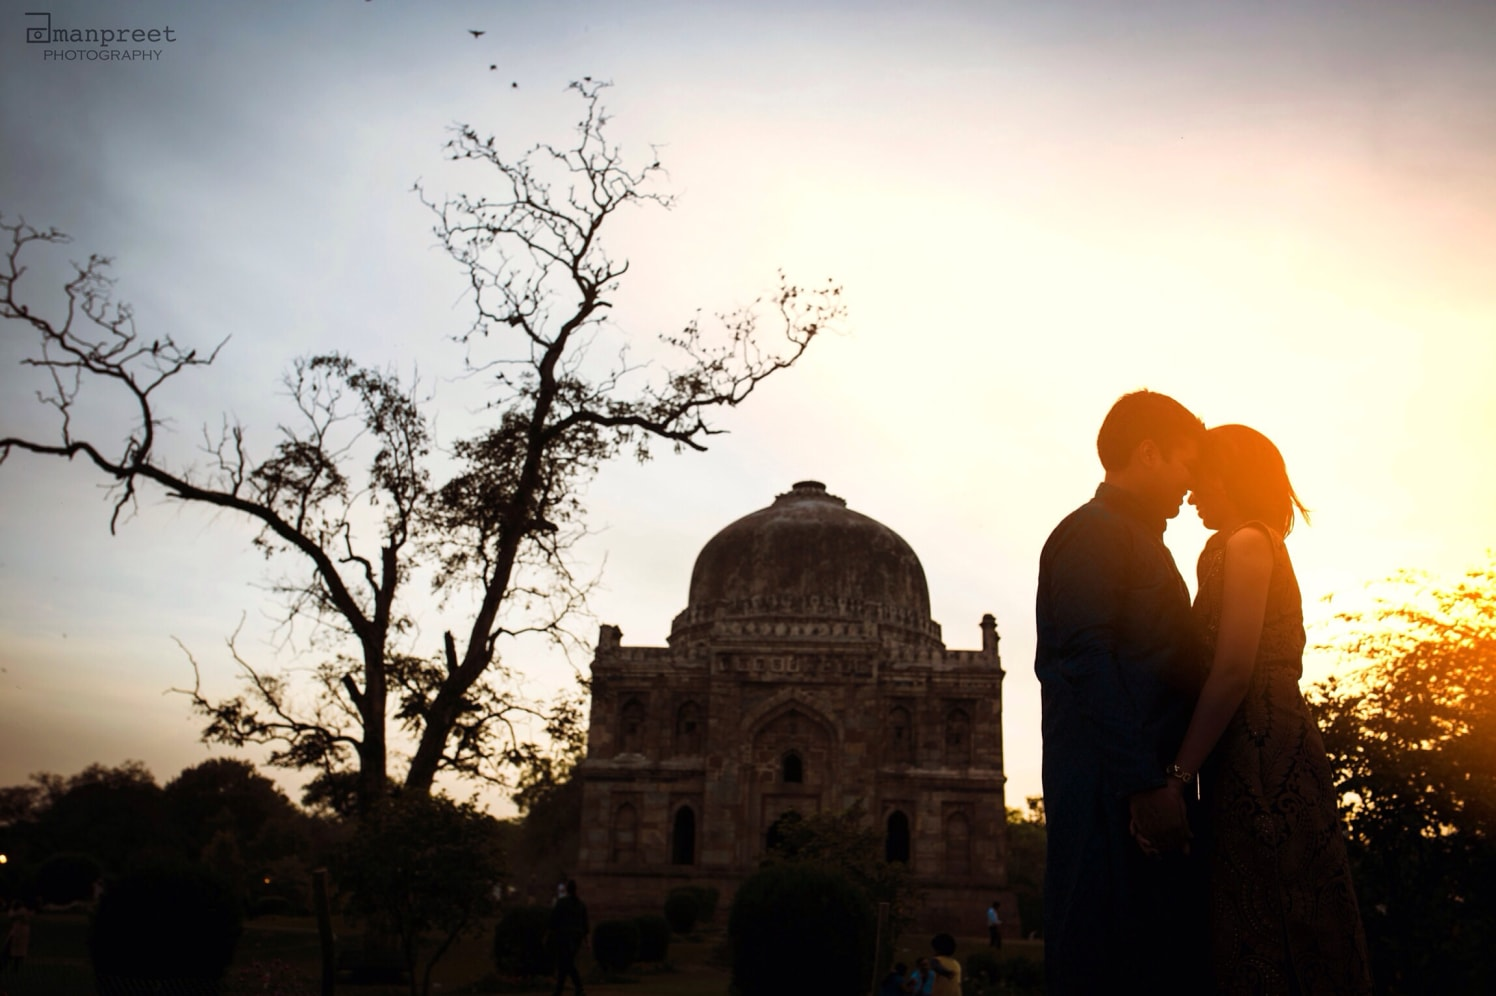 Bride and Groom To-Be Strike a Pose Against Stunning Backdrop by Amanpreet Kaur Wedding-photography | Weddings Photos & Ideas